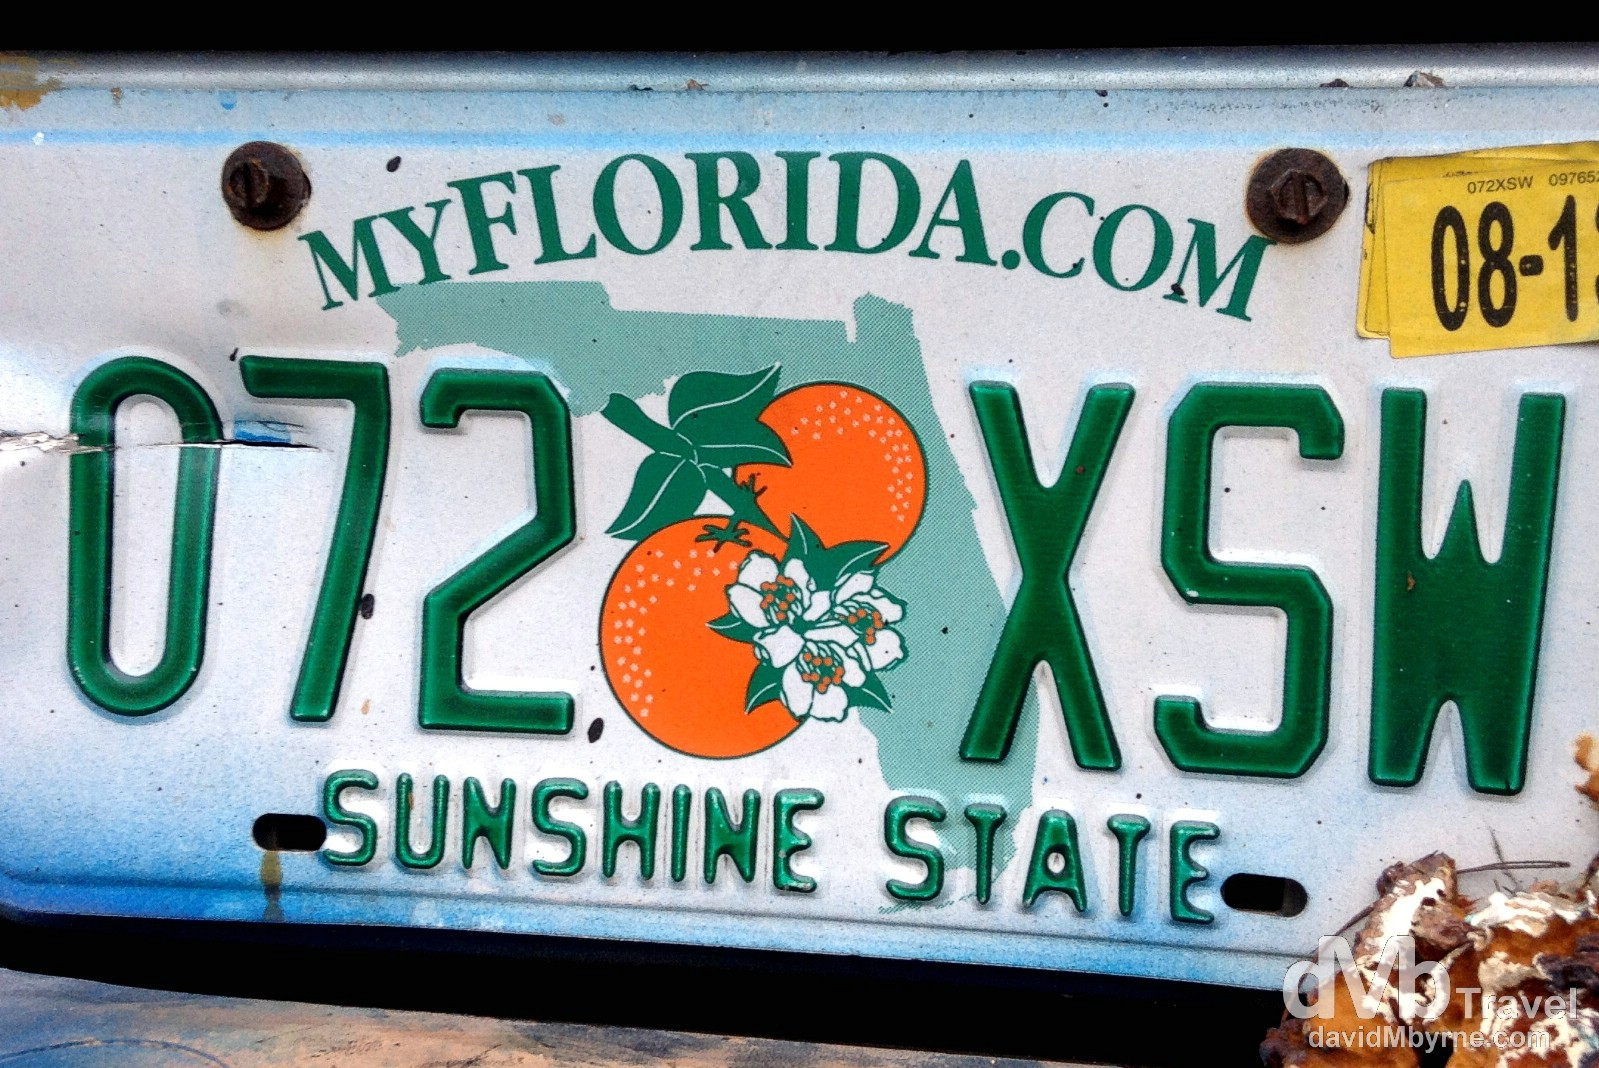 A licence plate on the streets of Key West, Florida, USA. July 3rd 2013. (iPod)